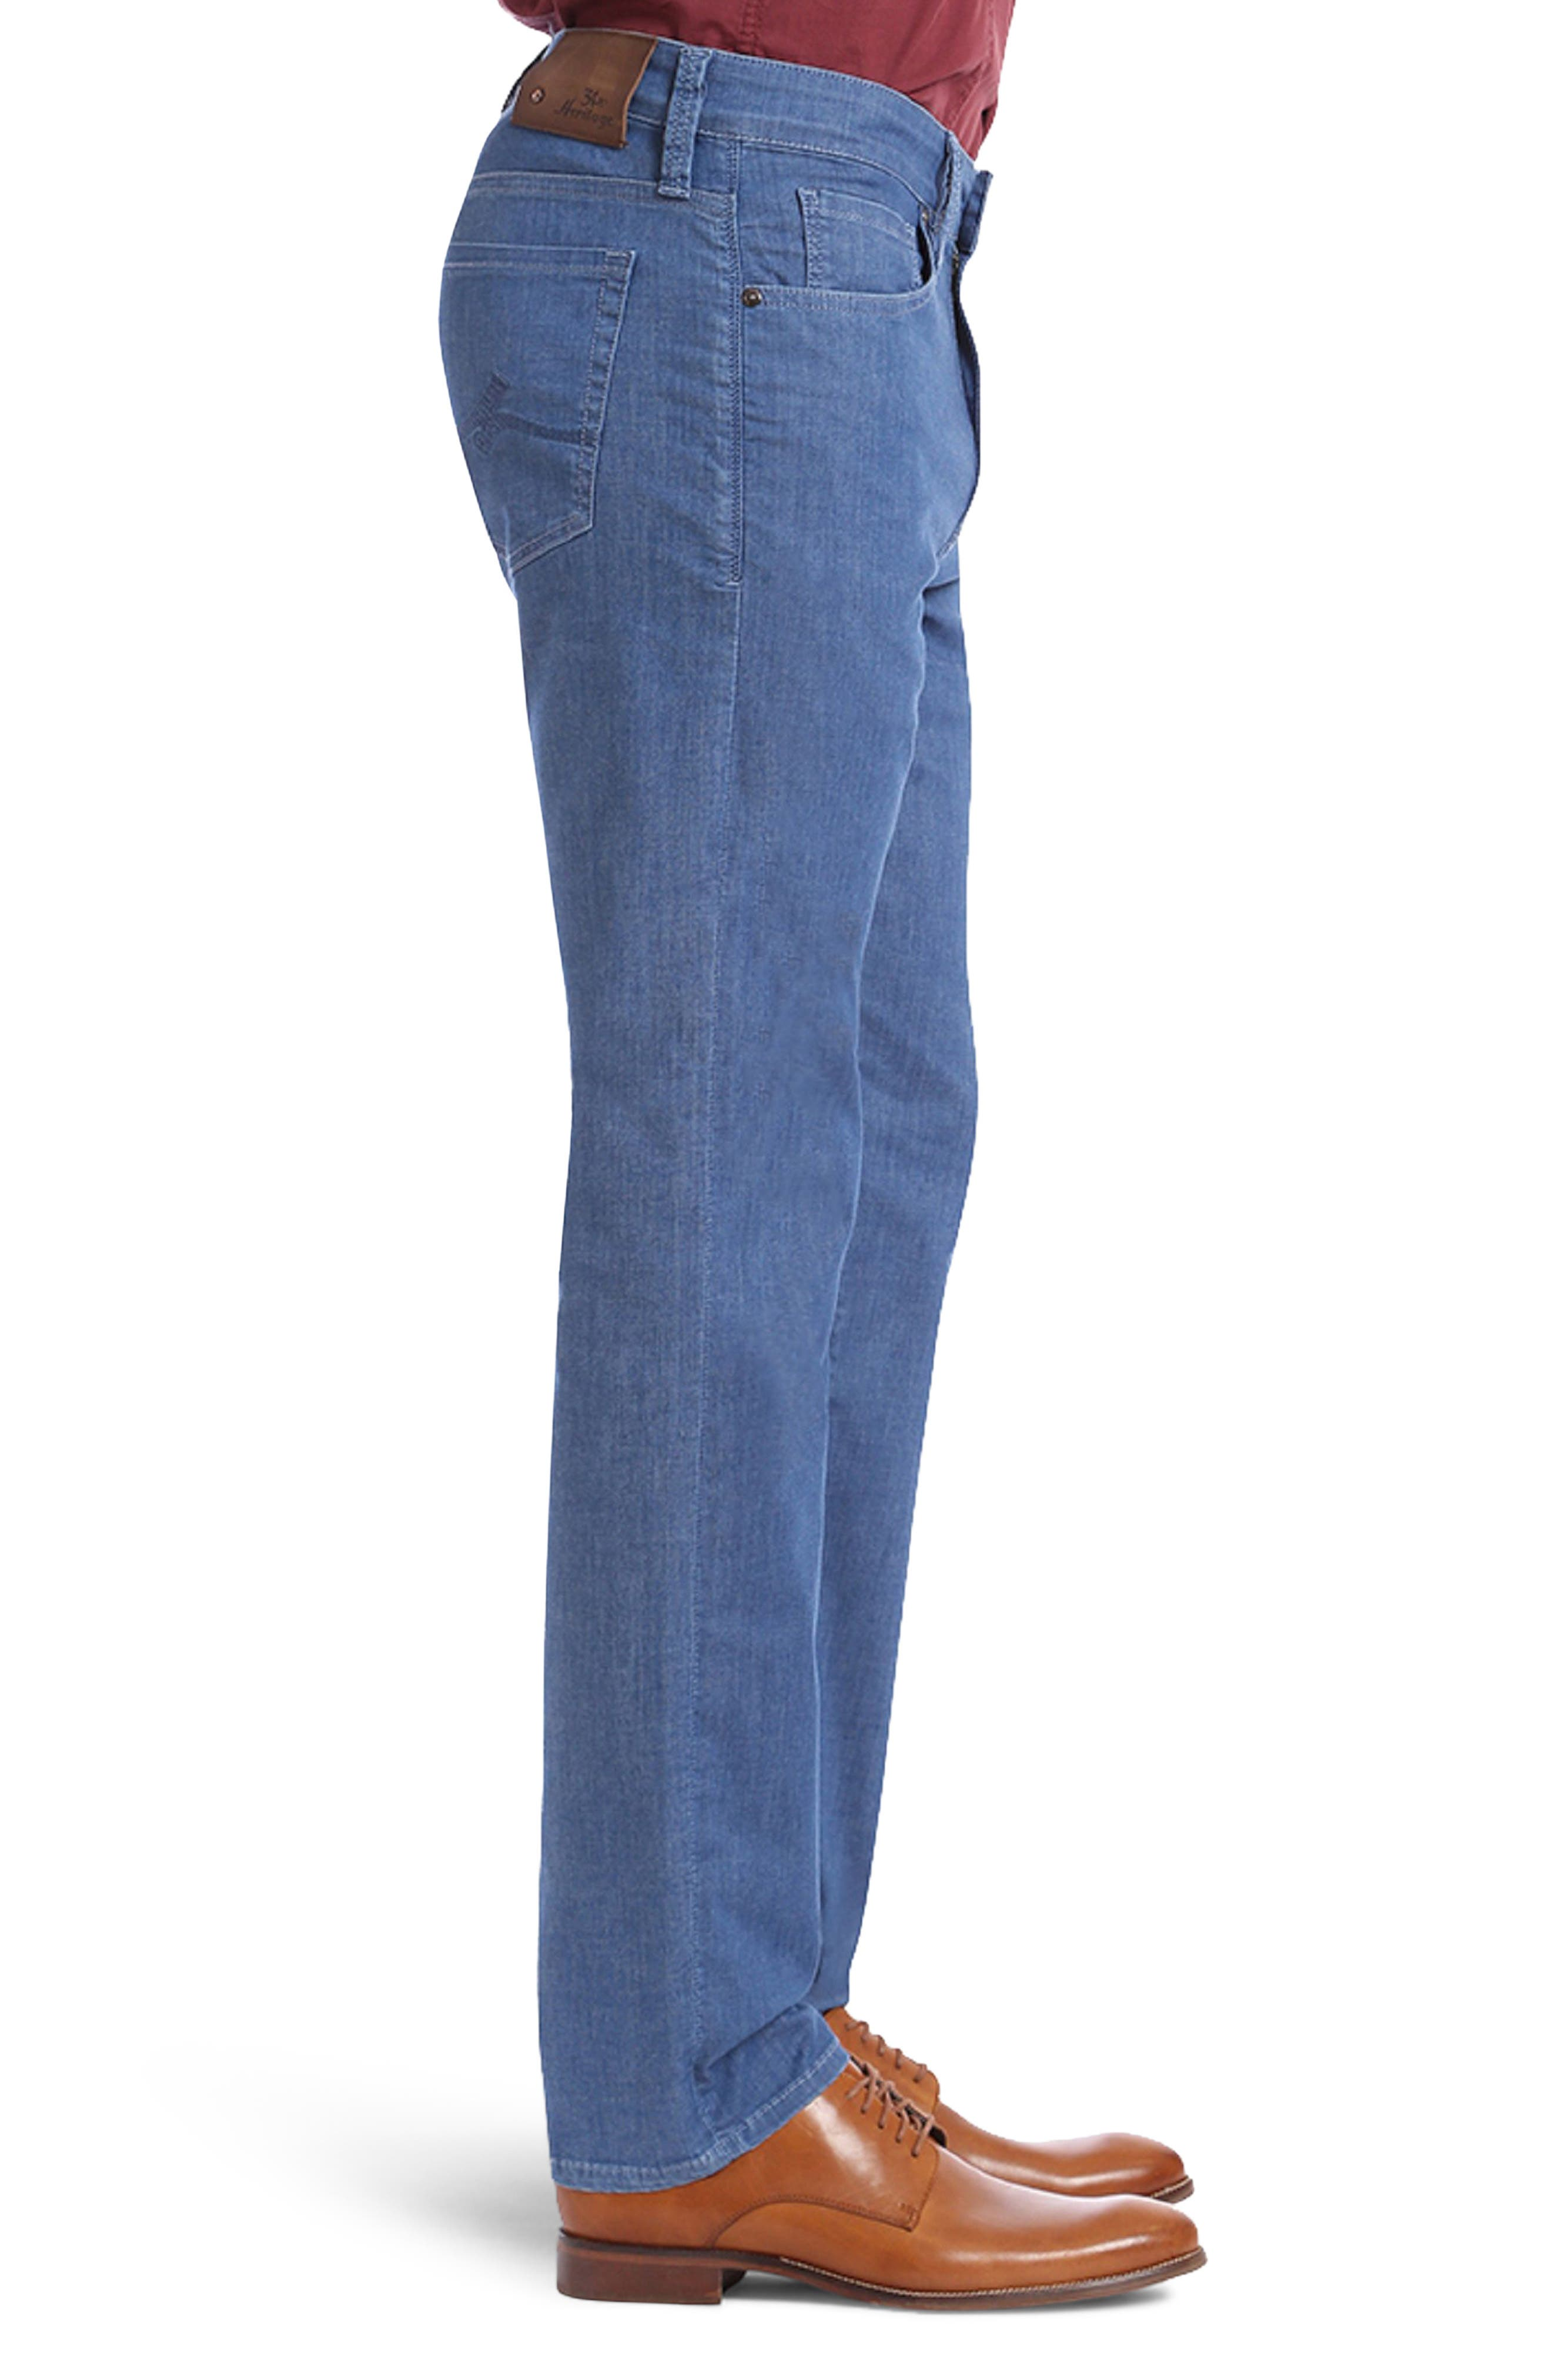 Courage Straight Fit Jeans,                             Alternate thumbnail 3, color,                             MID MAUI DENIM